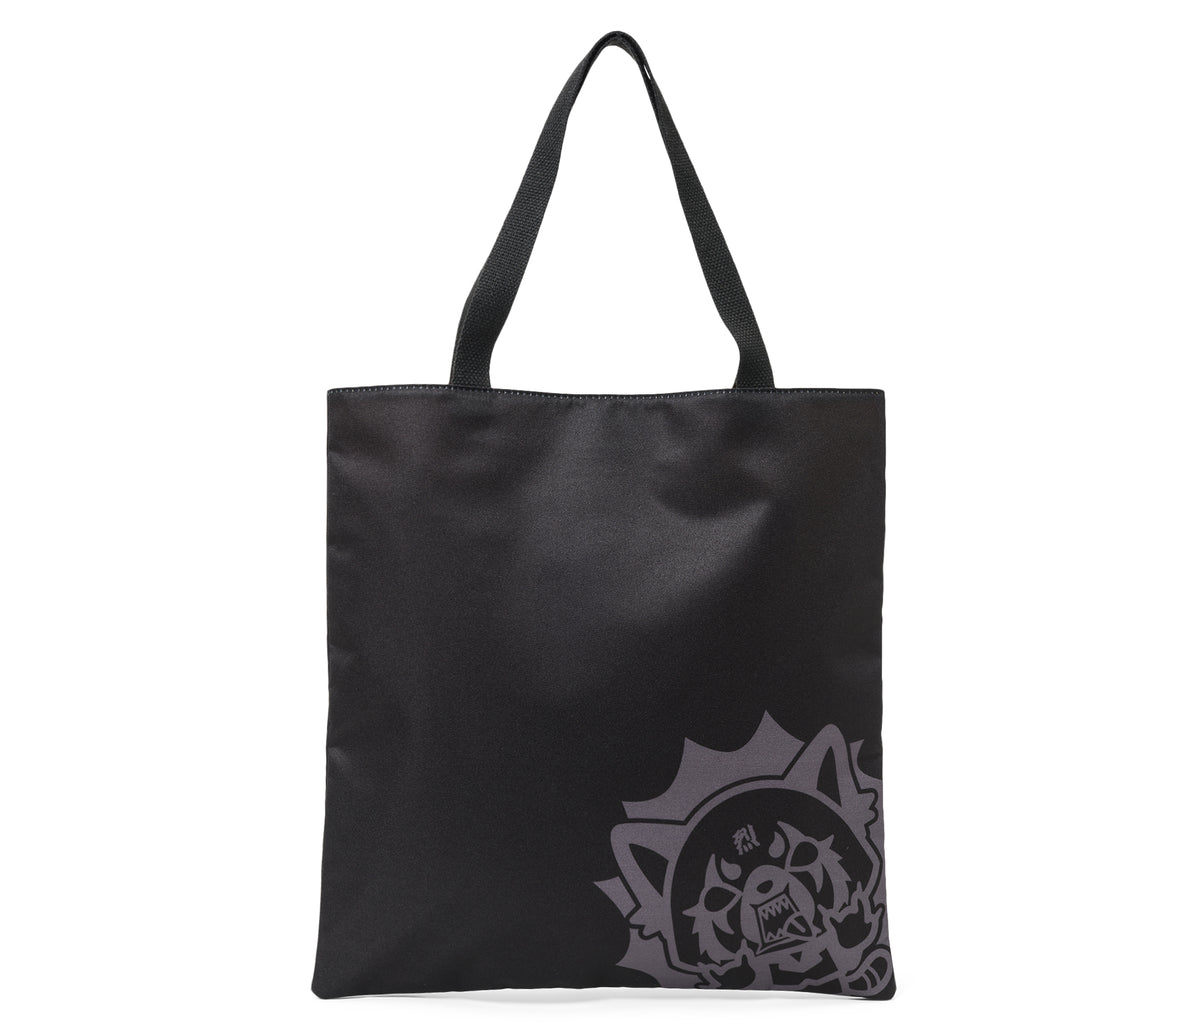 Aggretsuko Tote Bag Black Metal